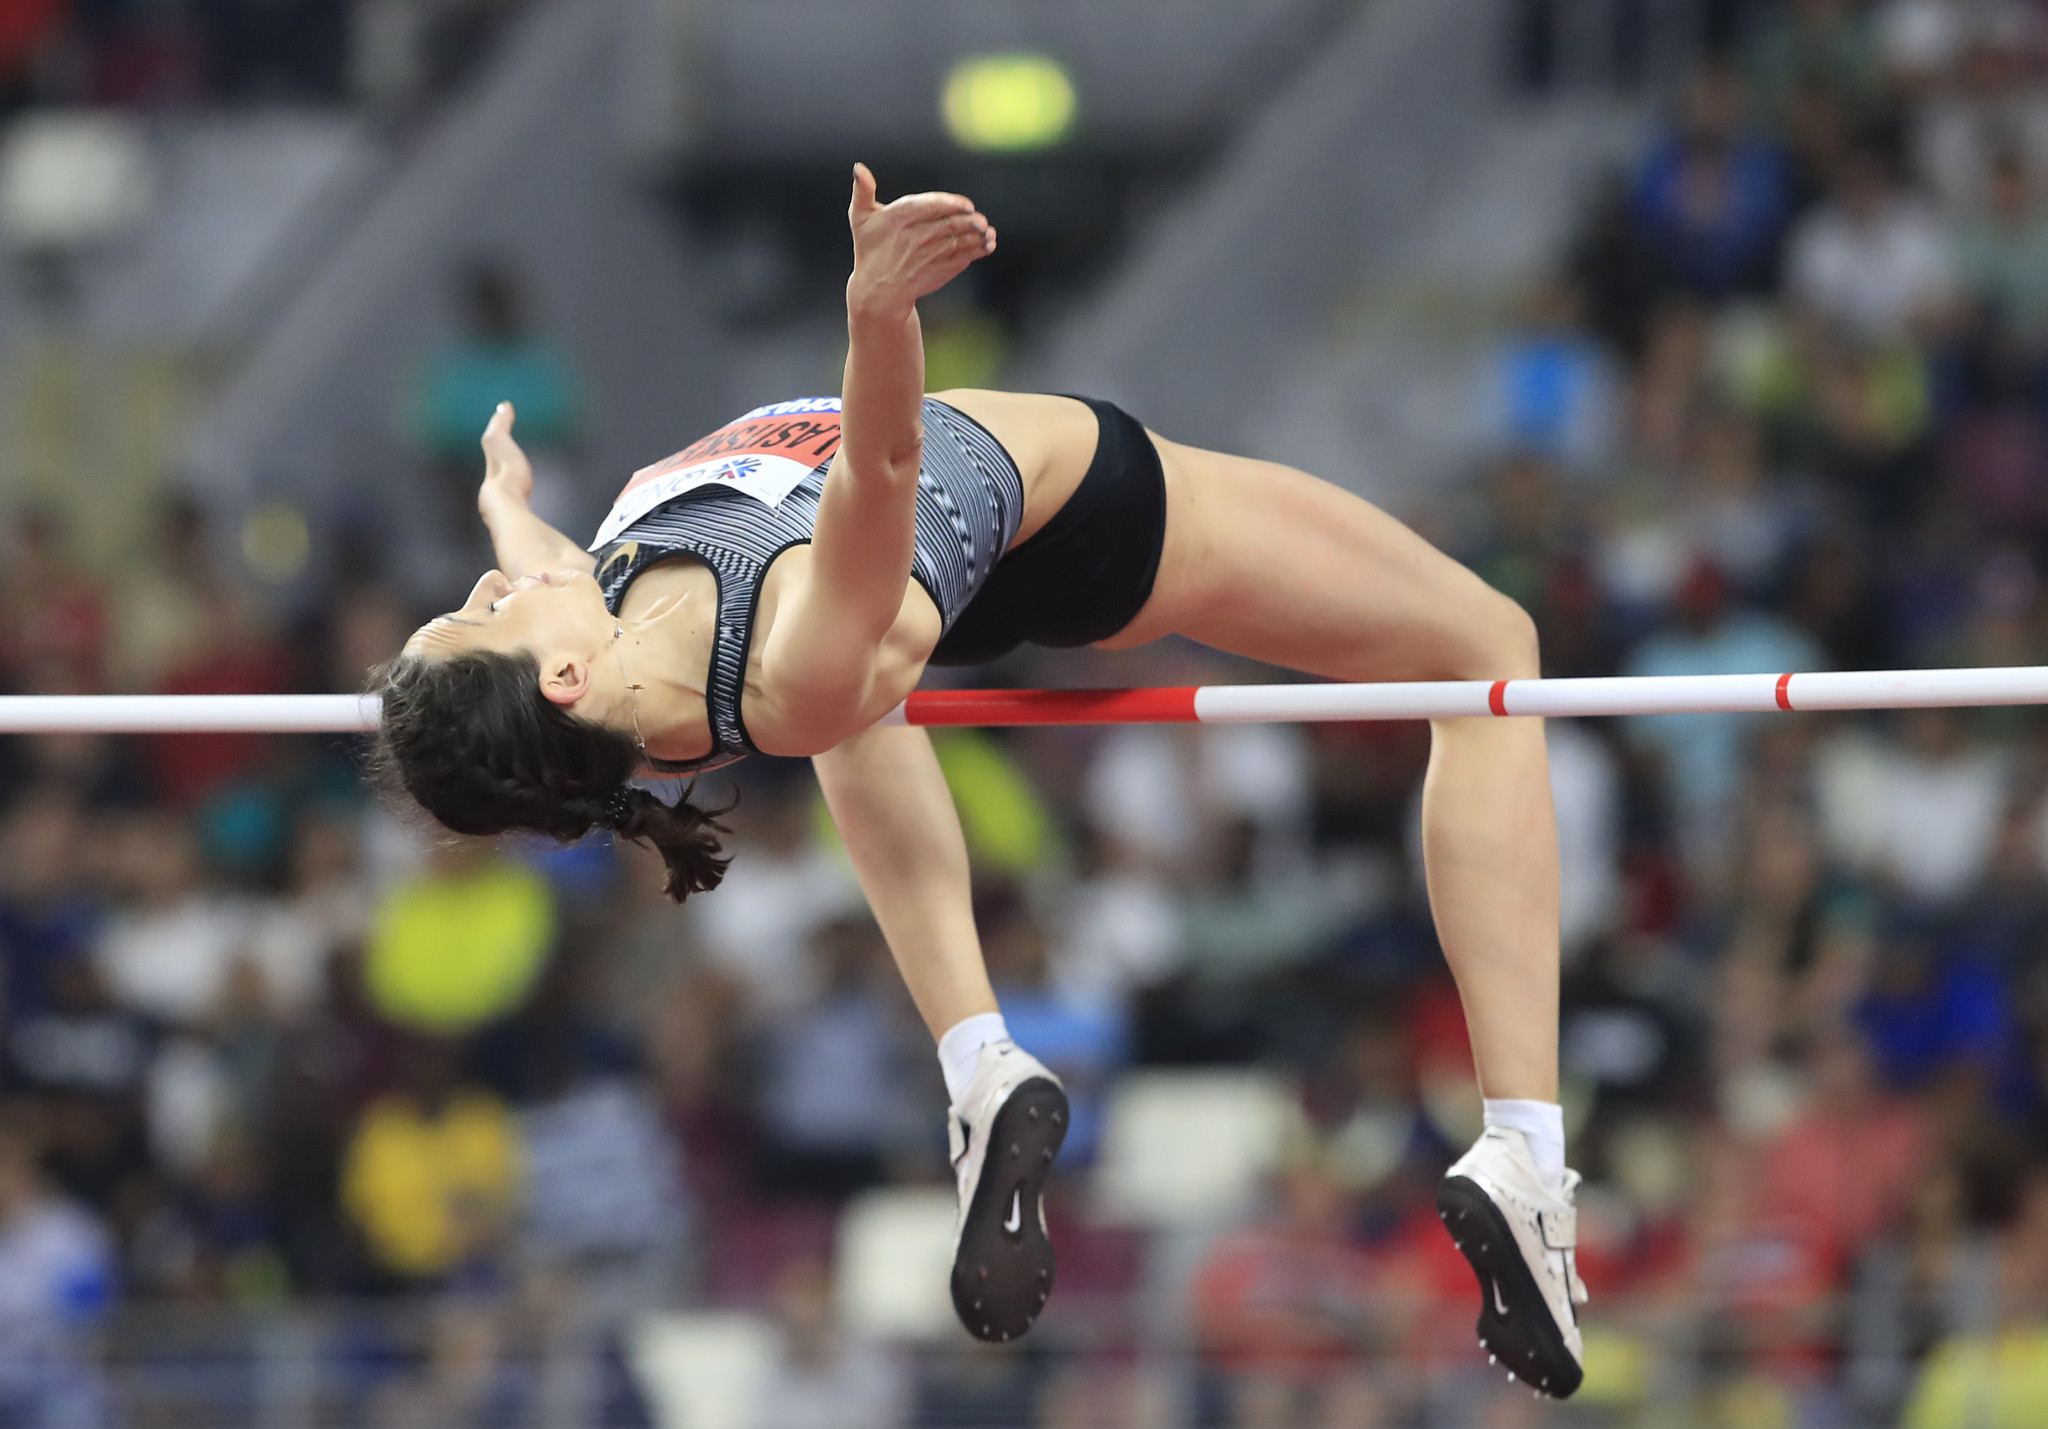 Three-times world high jump champion Mariya Lasitskene fears Russian track and field athletes may be frozen out of Tokyo 2020 following the renewed anti-doping sanctions incurred by the Russian Athletics Federation ©Getty Images